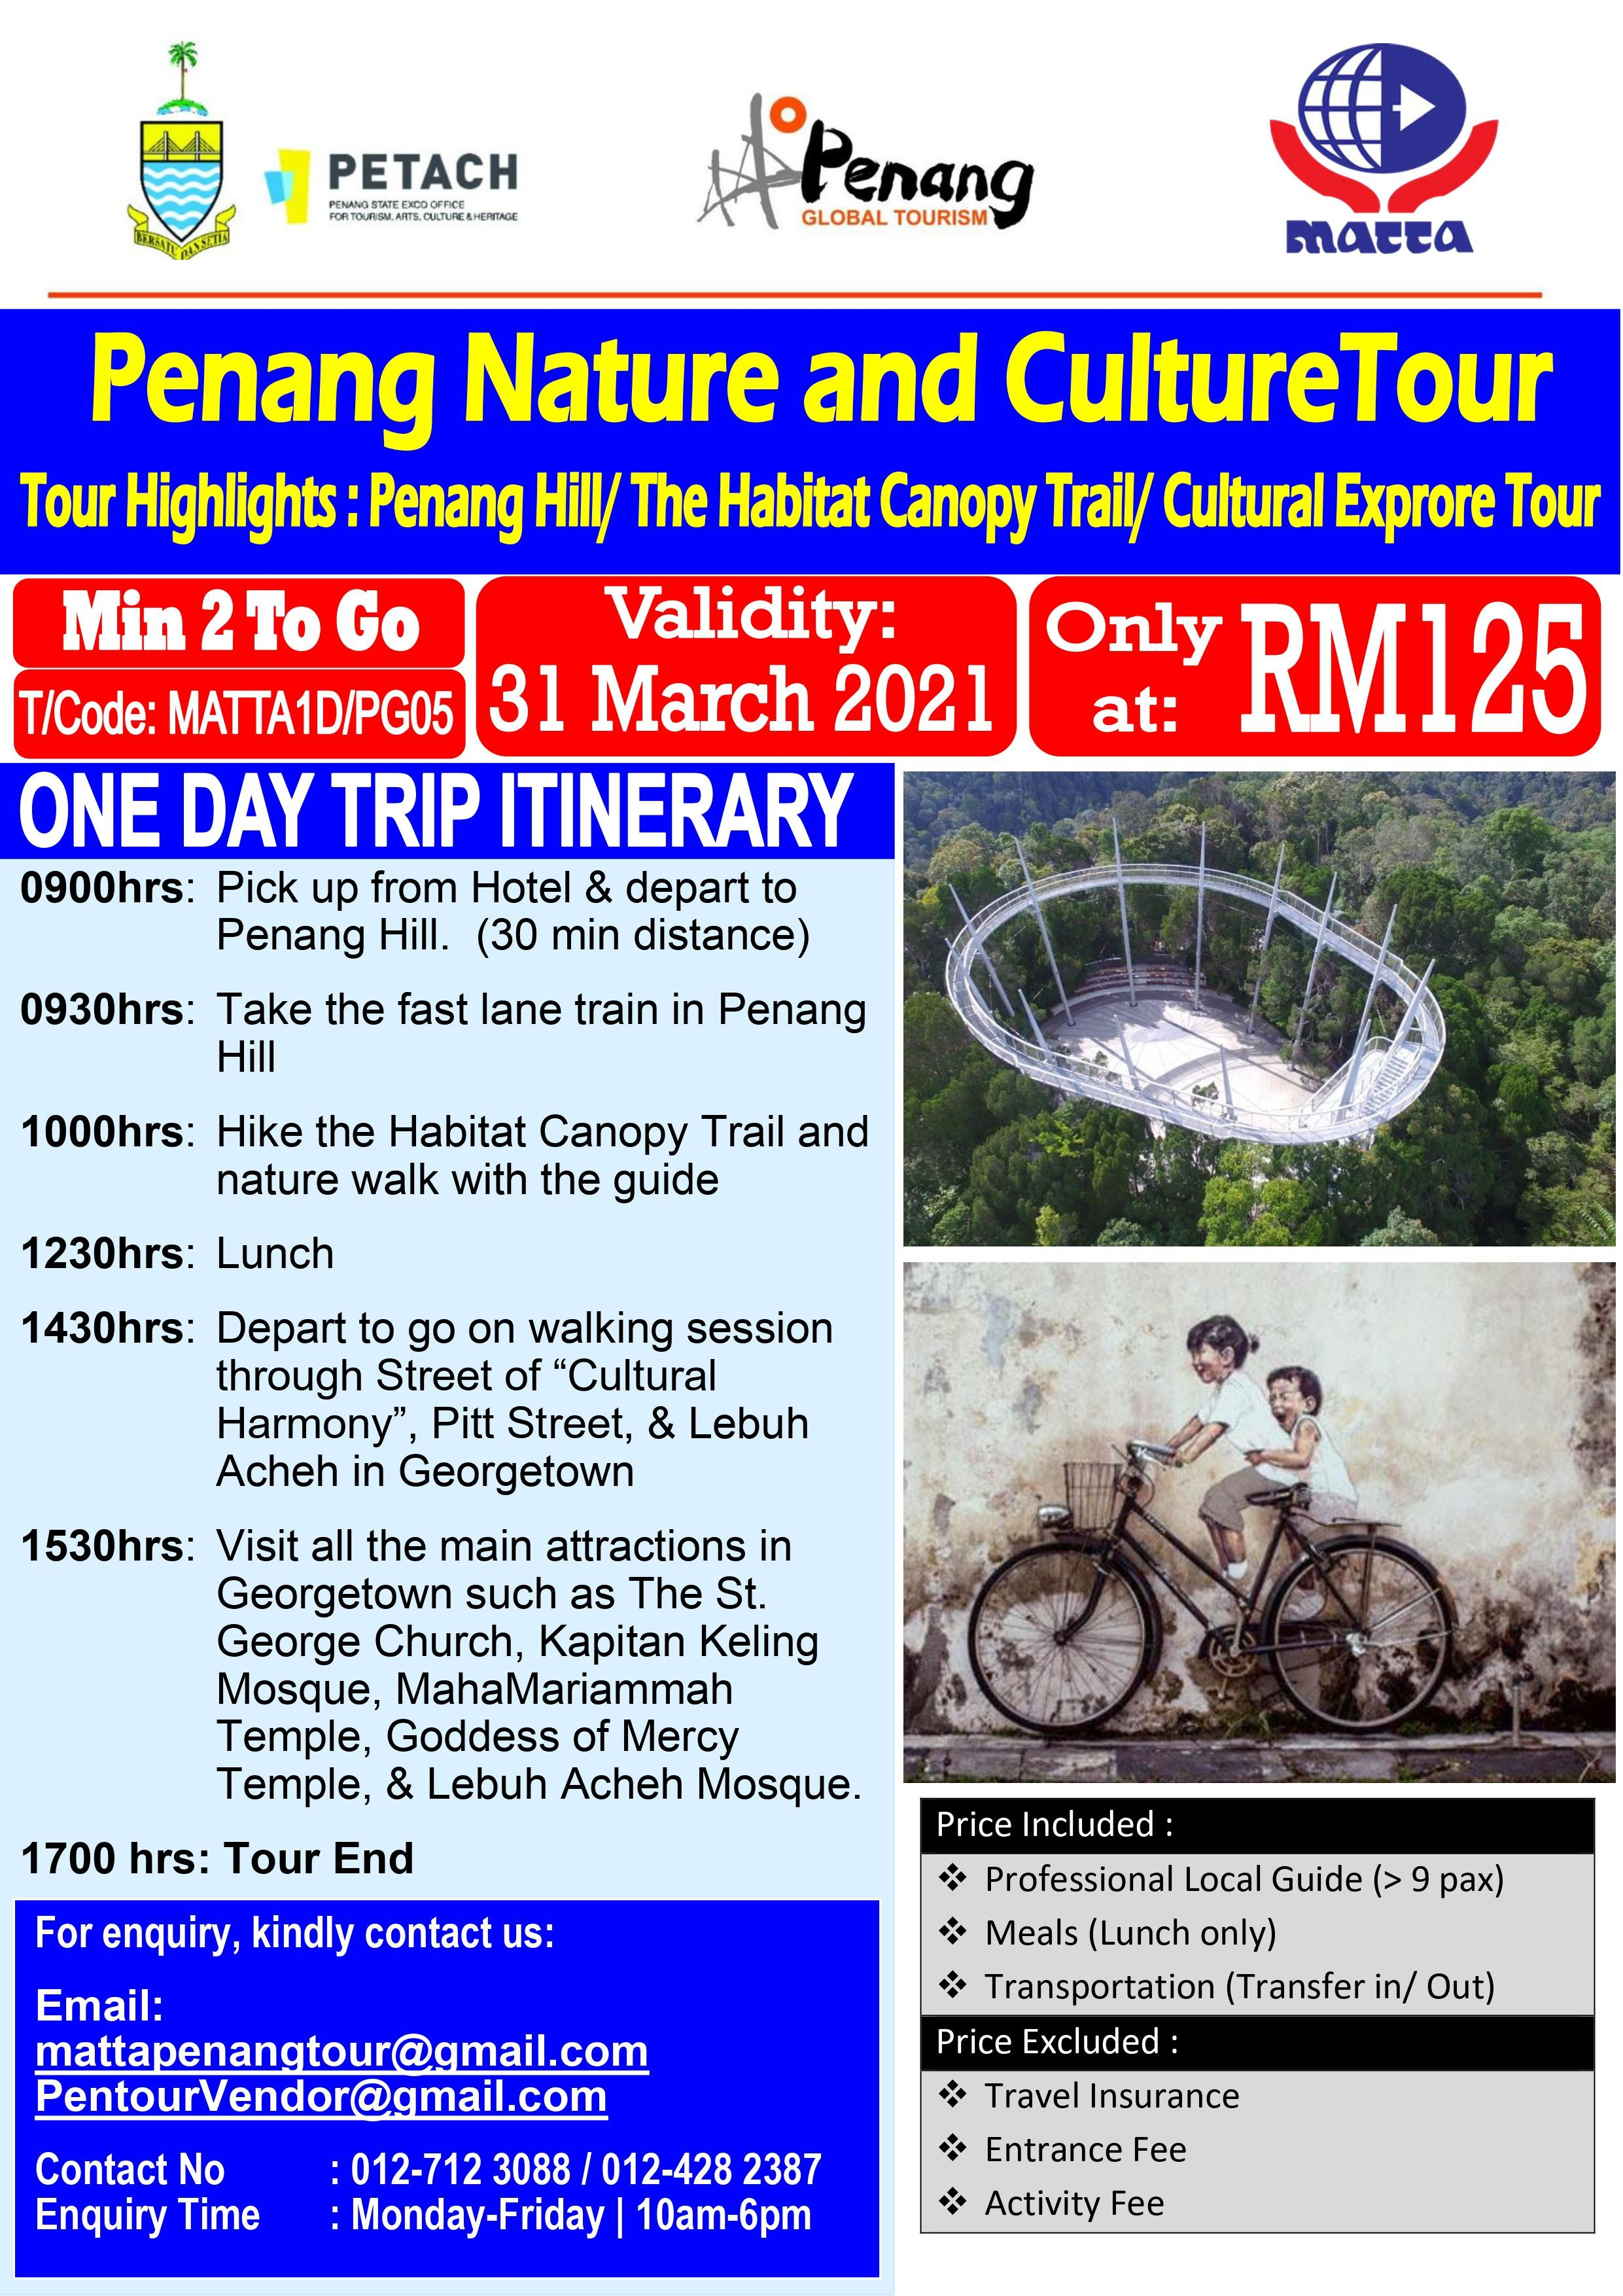 Penang Nature and Culture Tour - 1 Day